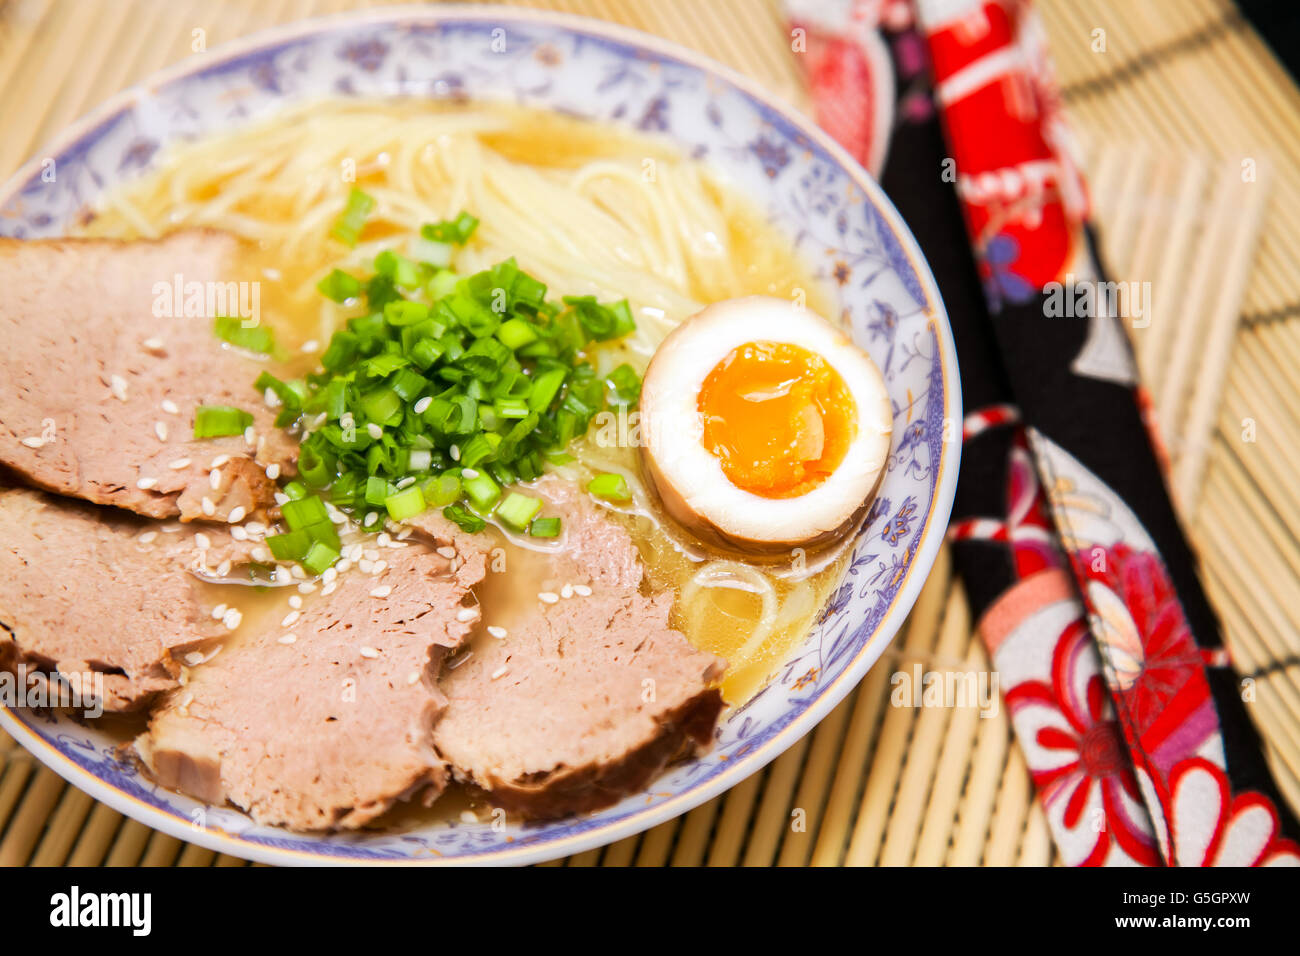 Salt ramen garnished with meat, egg and spring onion - Stock Image